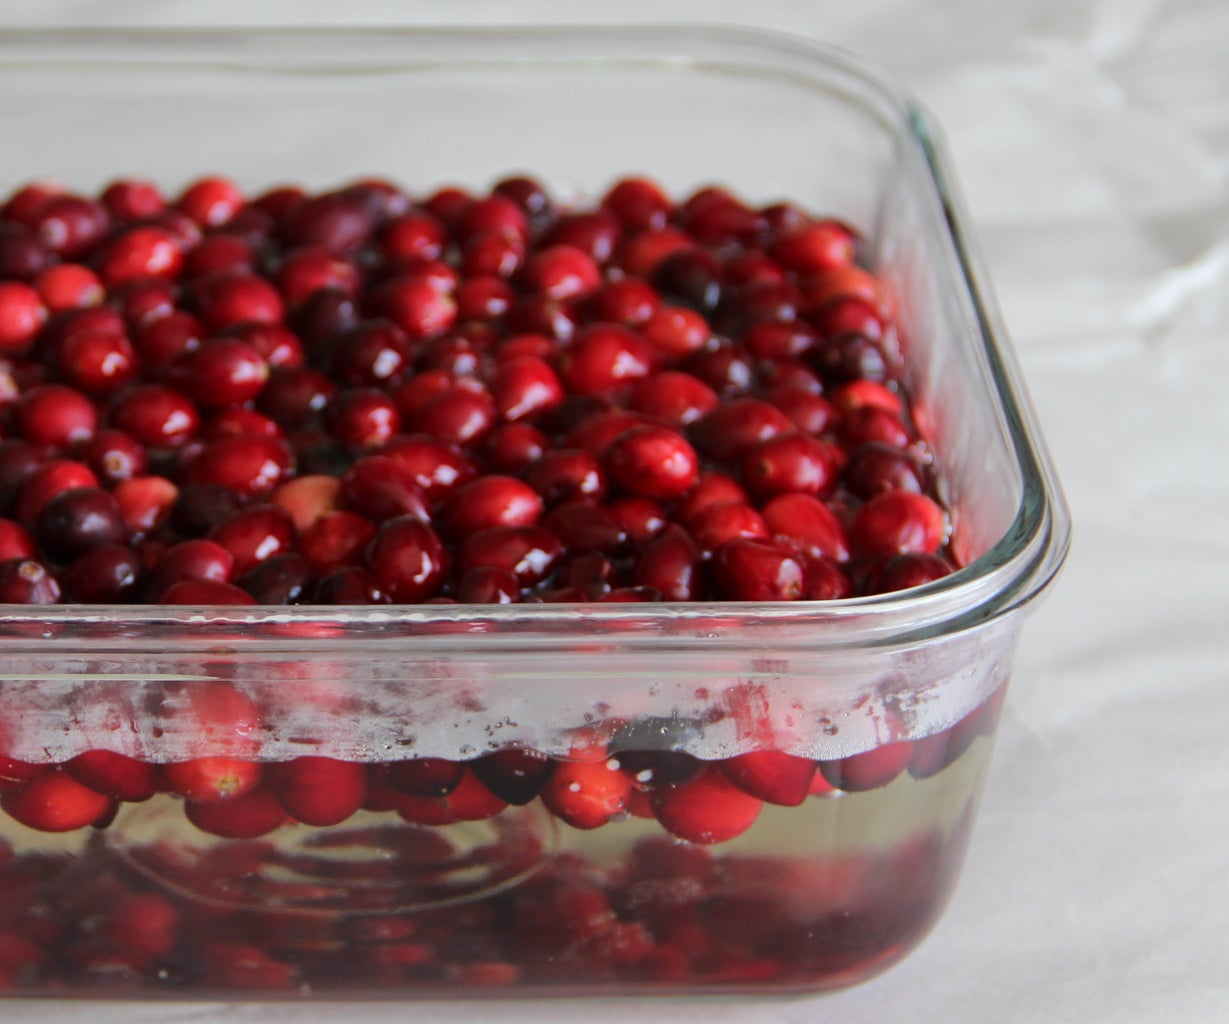 Make the Simple Syrup and Prick the Berries